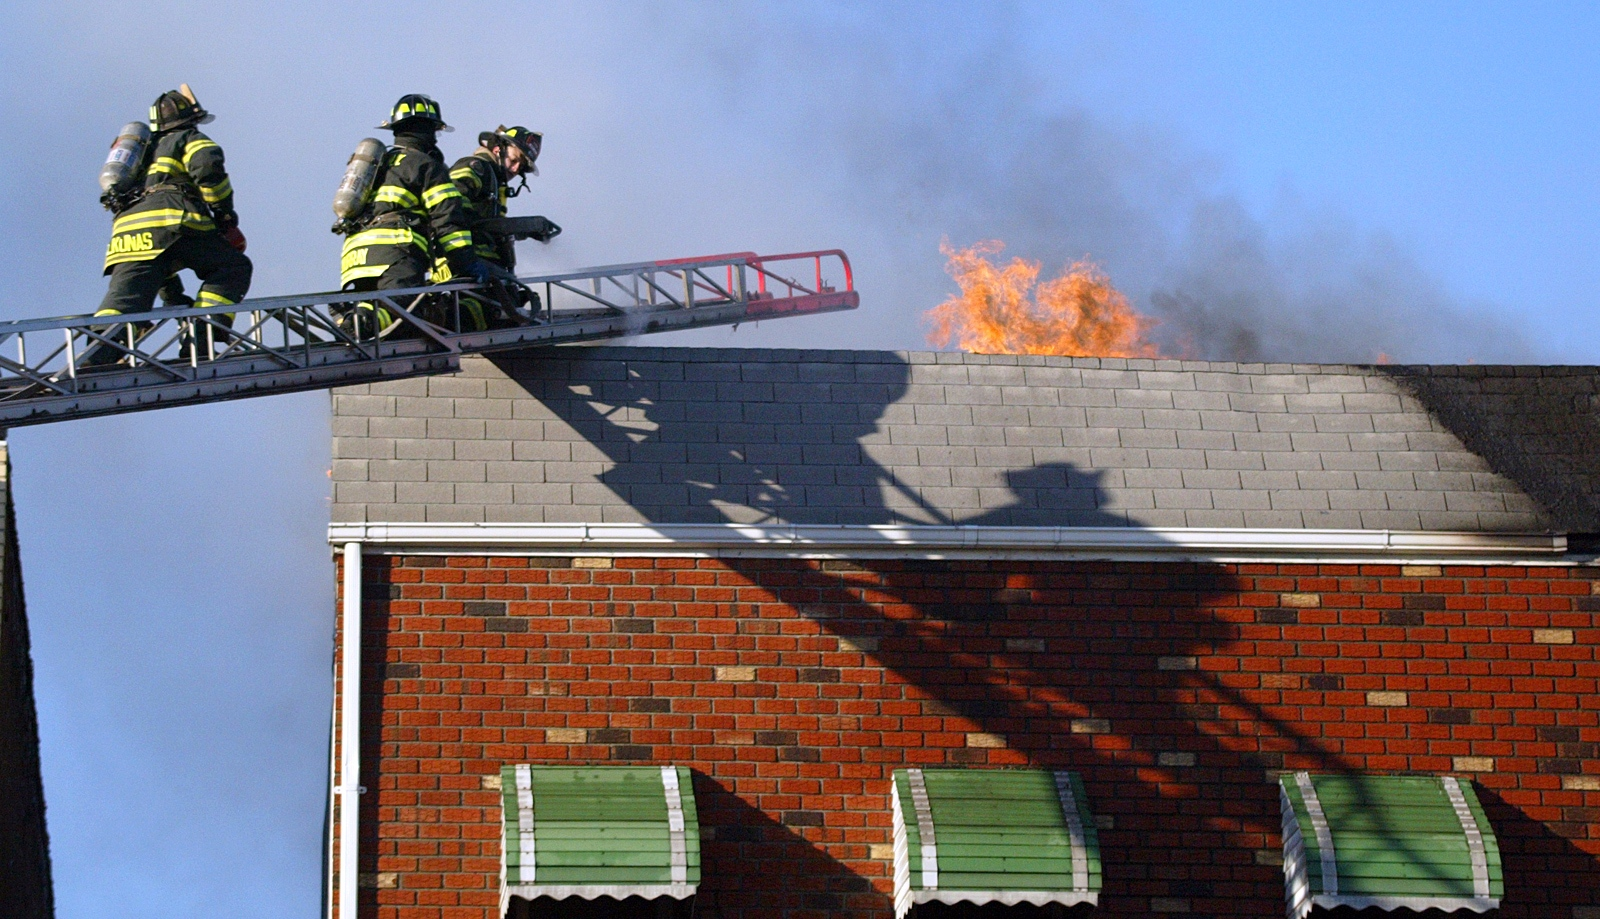 Firefighters work on a house fire in Brooklyn.